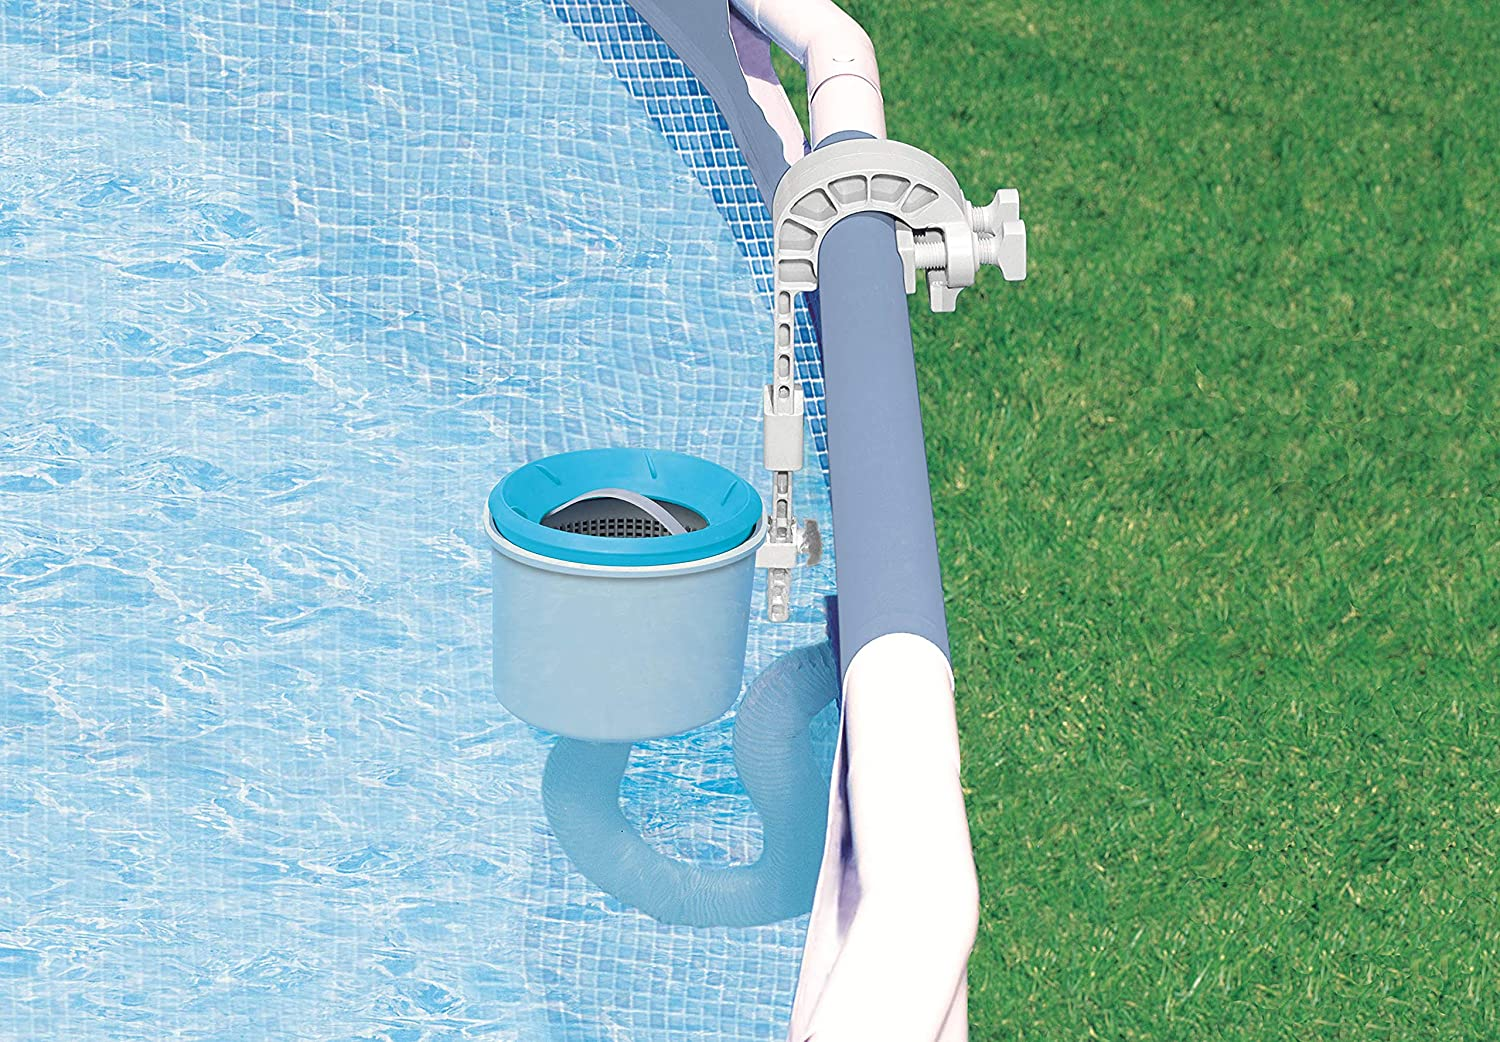 Intex Deluxe Skimmer USE with Above Ground Easy Set Swimming Pools ONLY